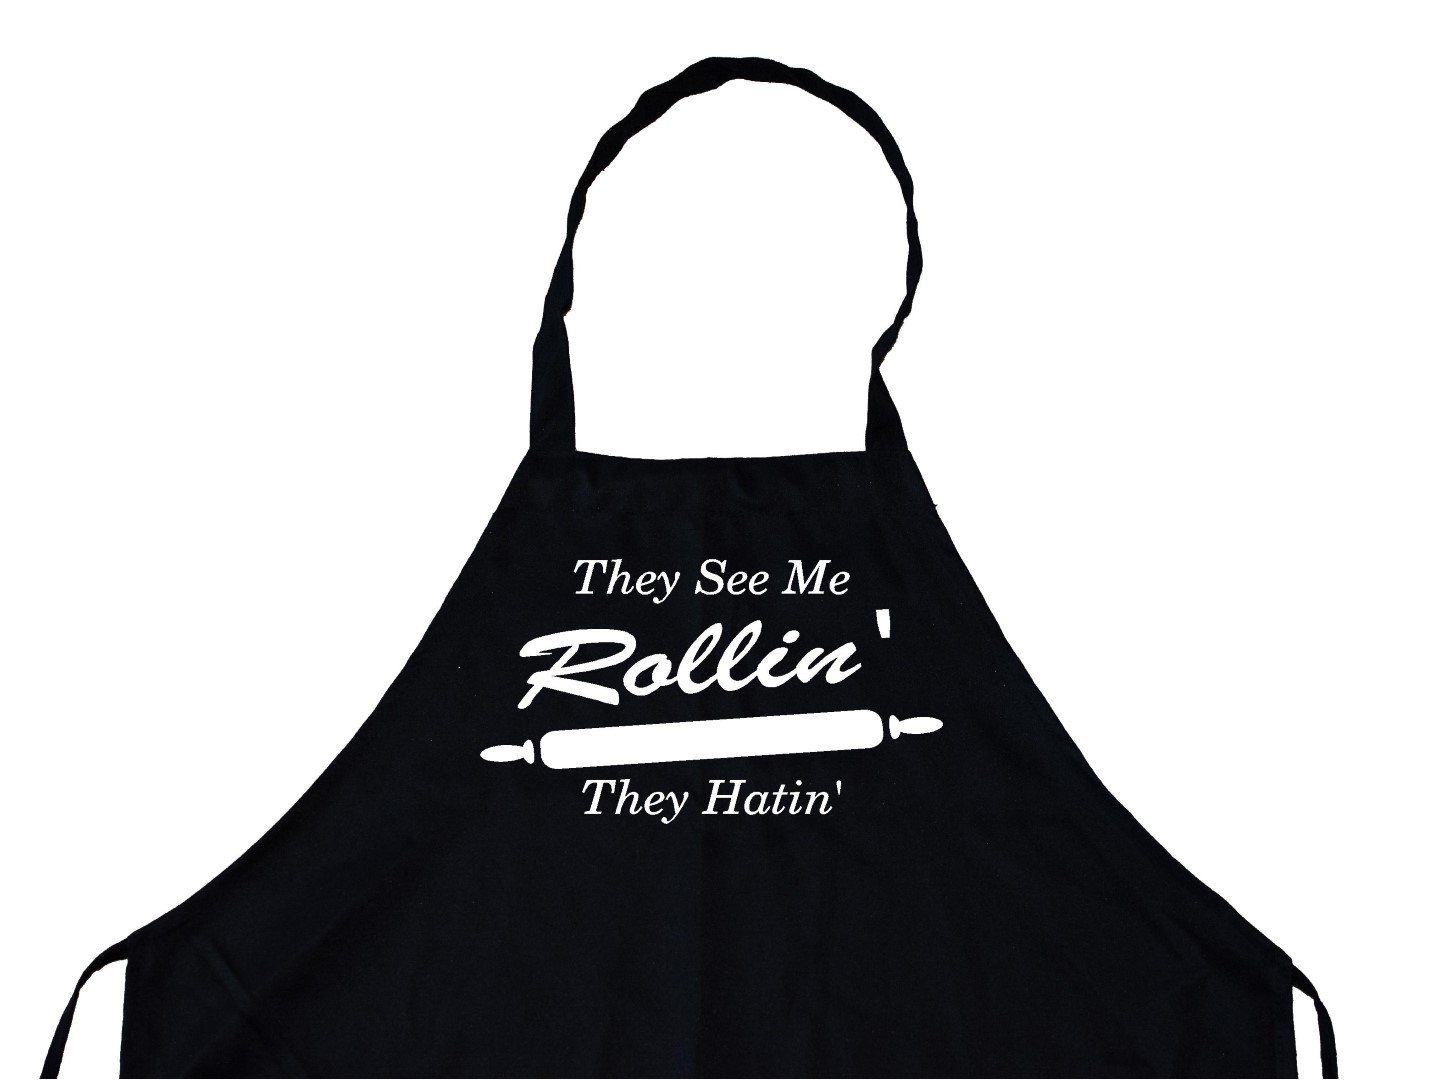 They See Me Rollin They Hatin Personalized Chef 's面白い料理エプロン(ブラック) キッチン、BBQグリル、通気性、洗濯機で洗濯可   B078T57LNP